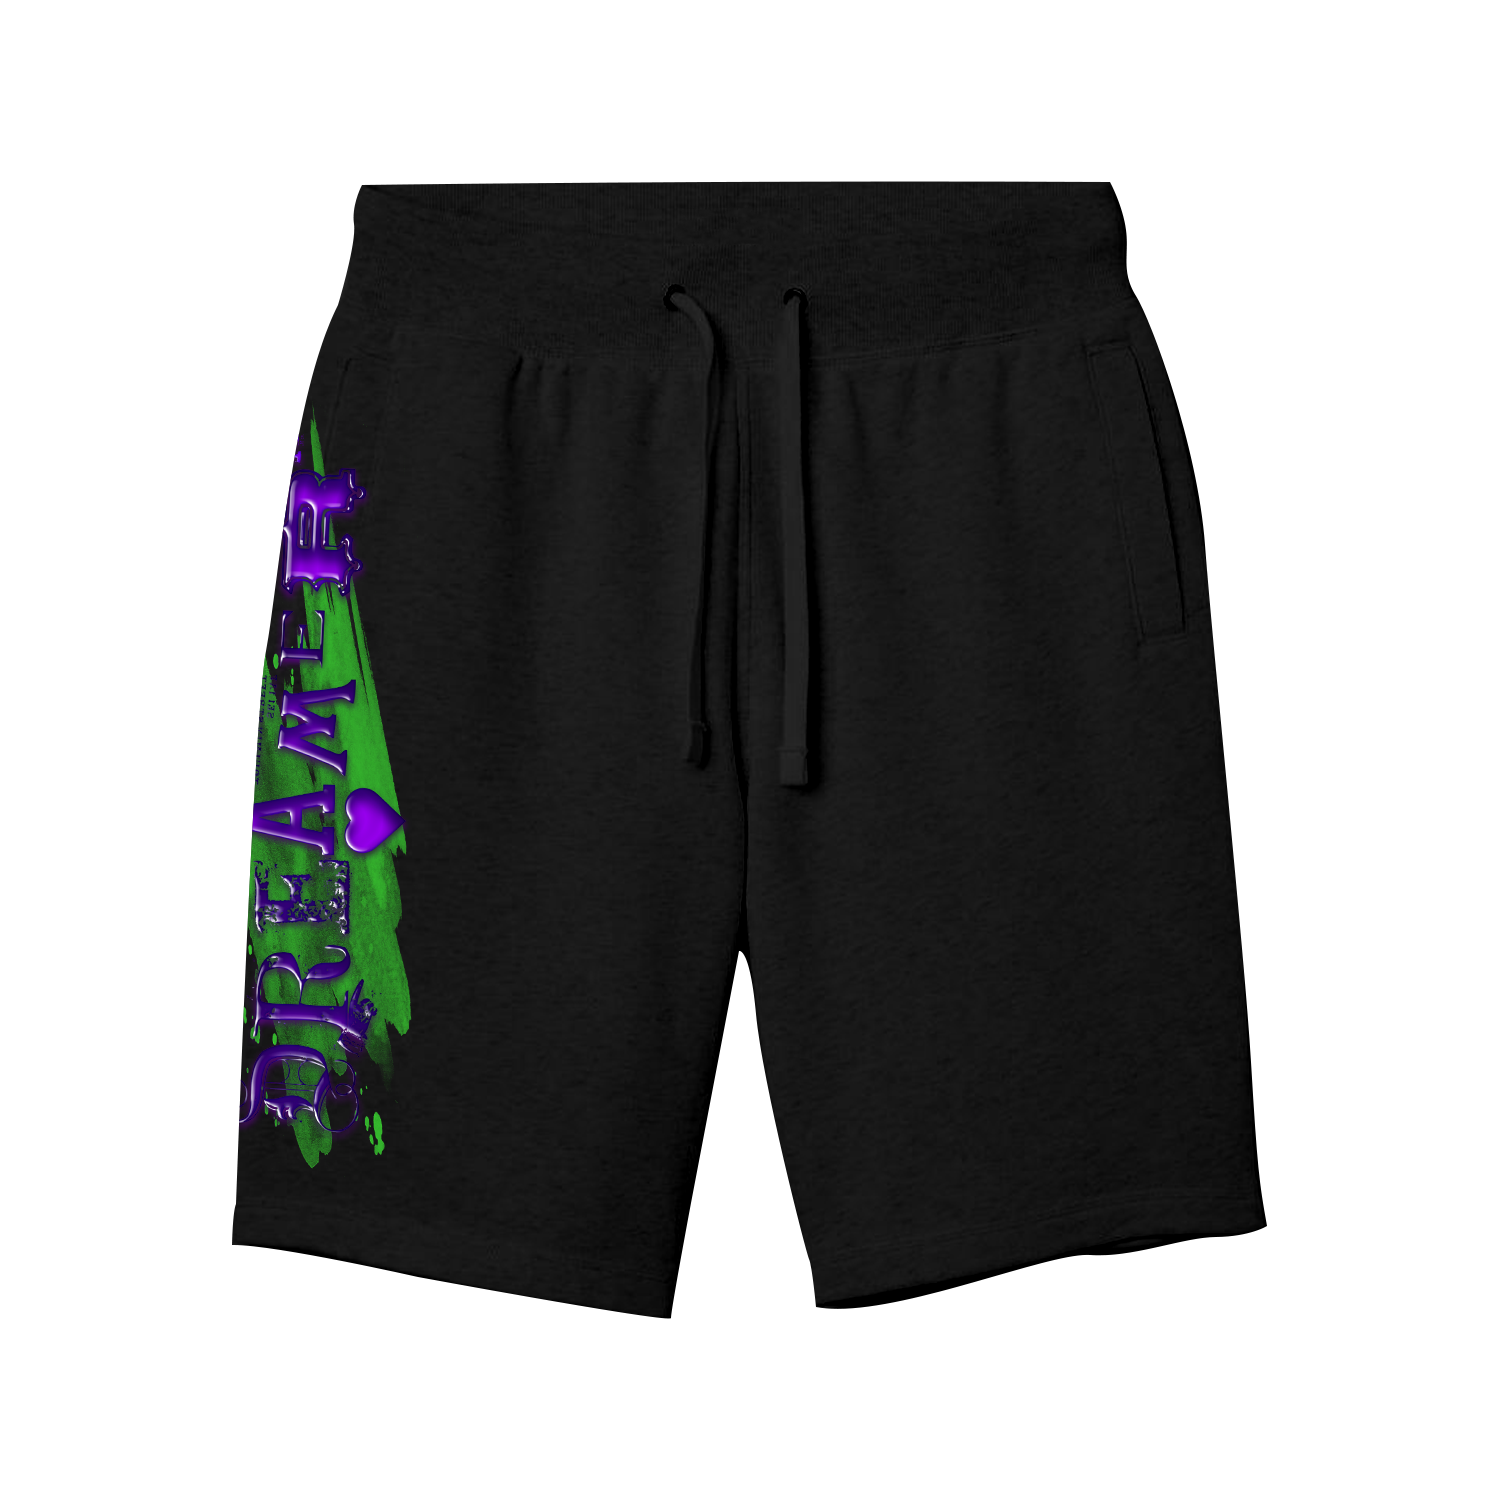 Slime Dreamers Shorts in Black